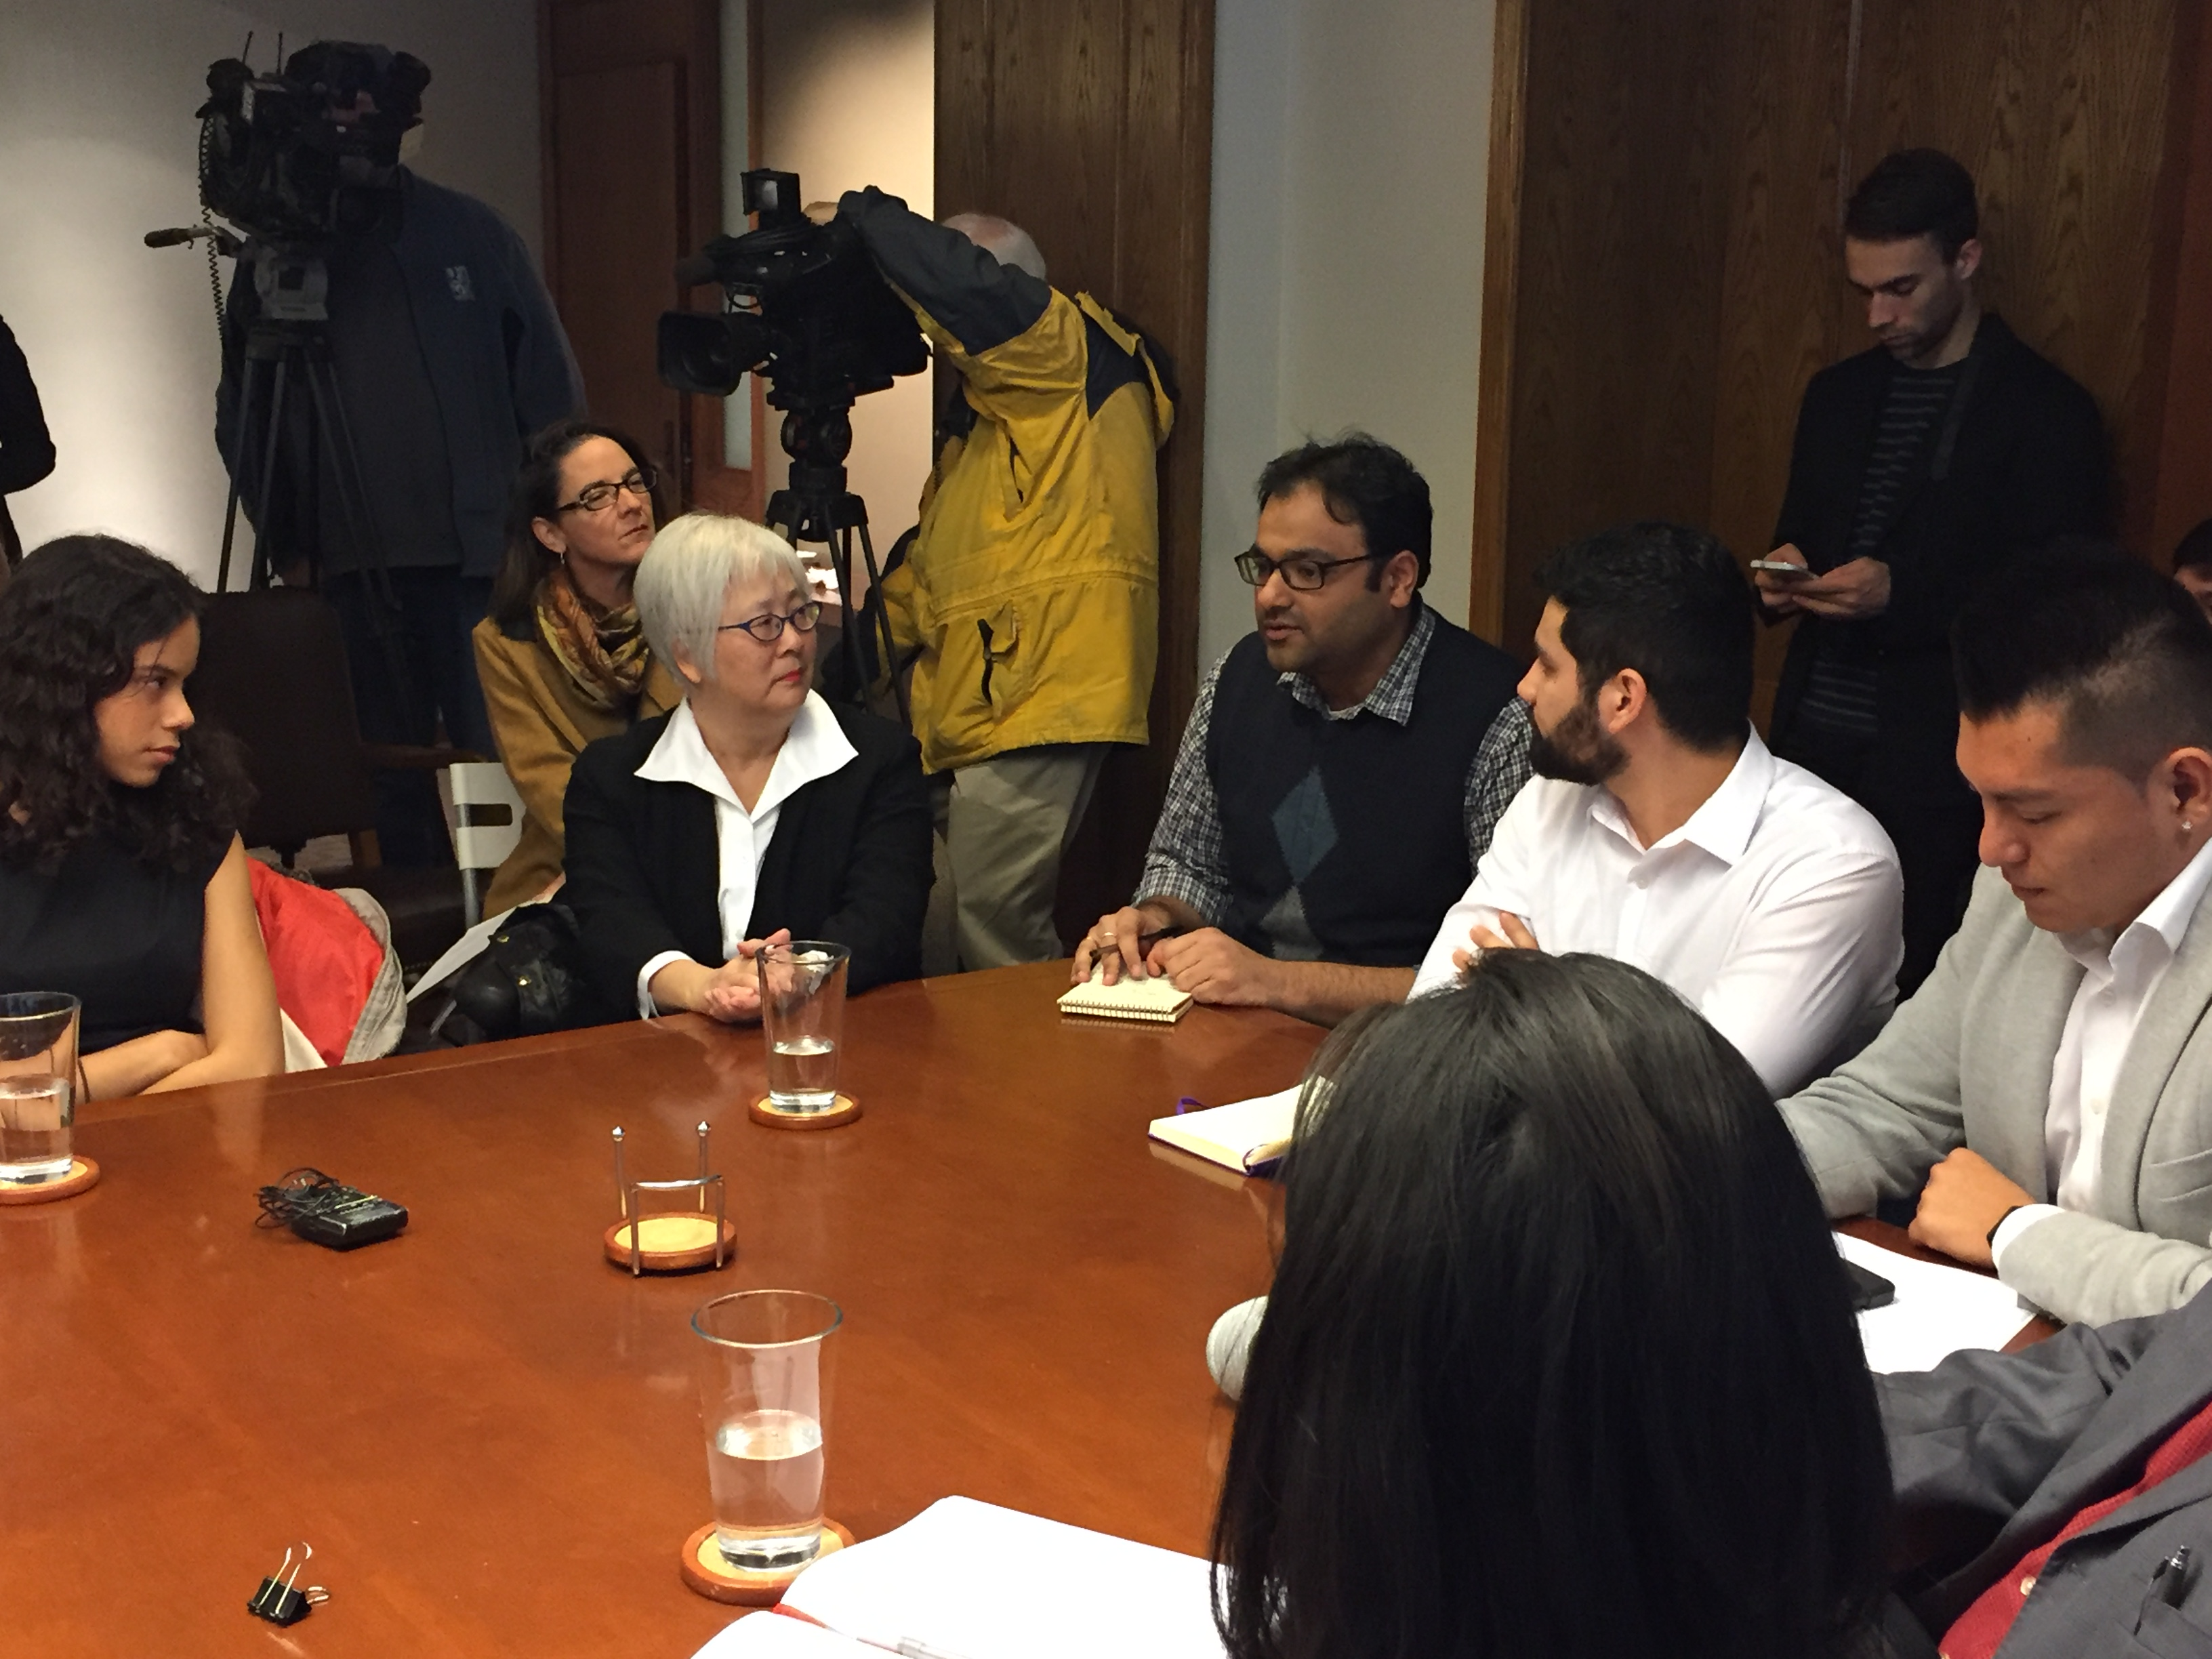 UAW 4121 Board Member Viral Shah participates in Immigration Roundtable with Congresswoman Jayapal